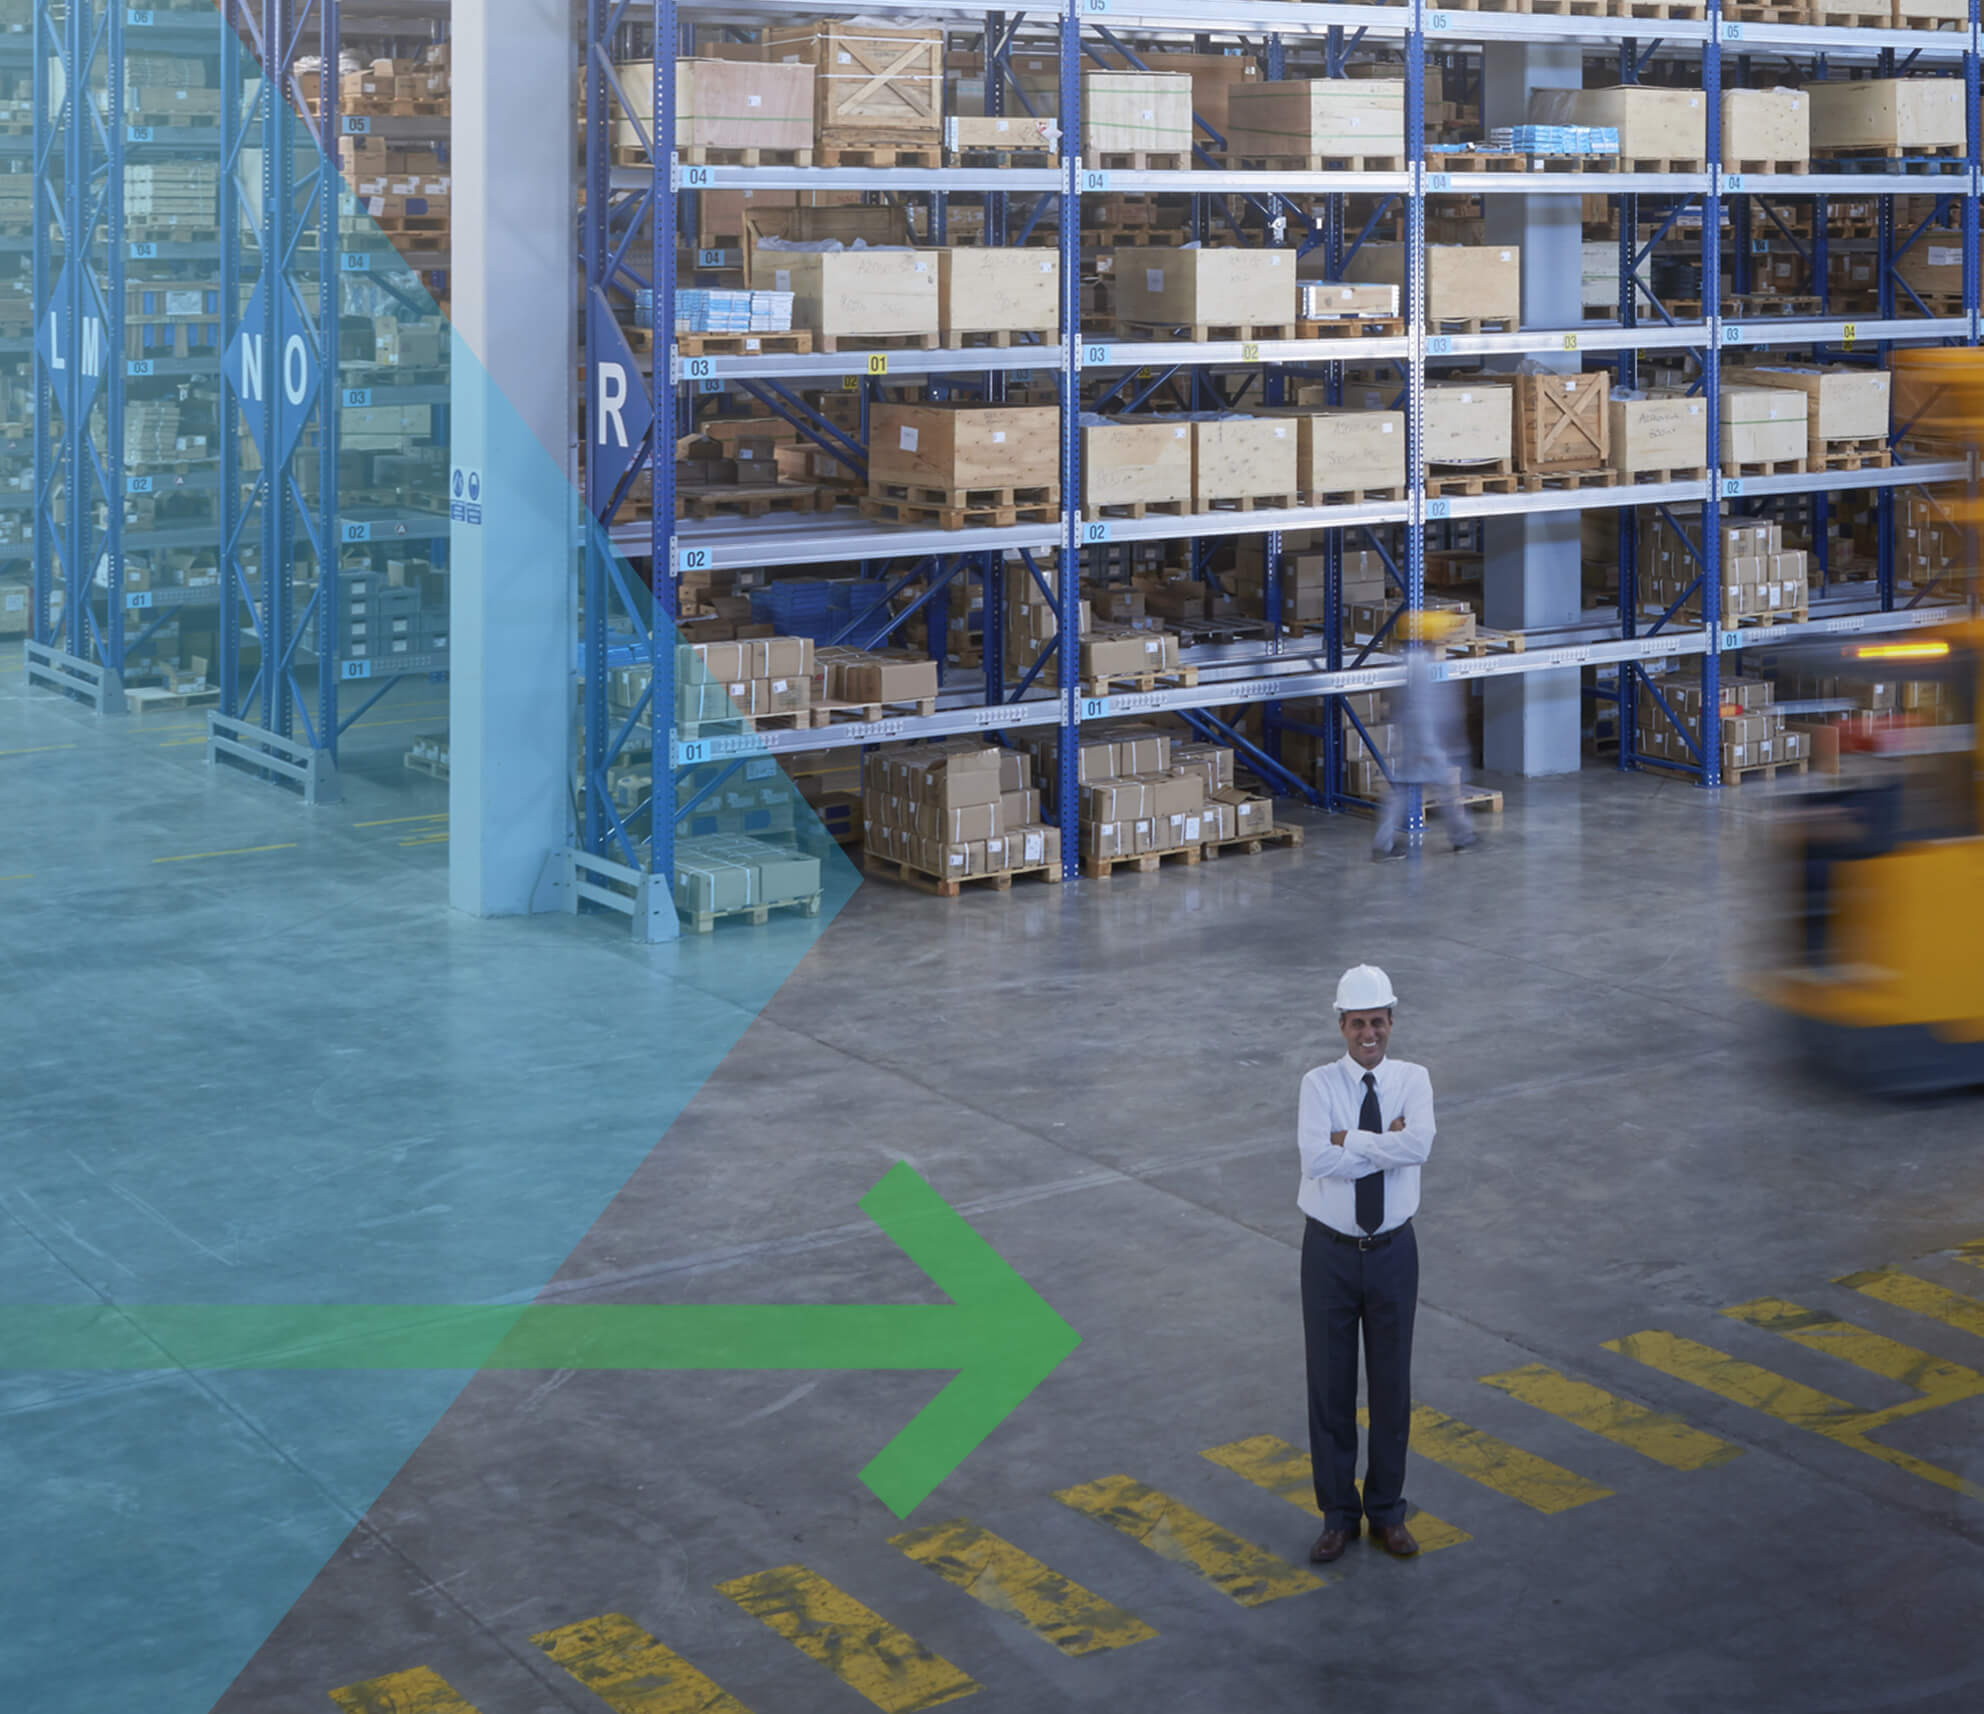 MAKE THE SWITCH TO A SMARTER WAREHOUSING SOLUTION